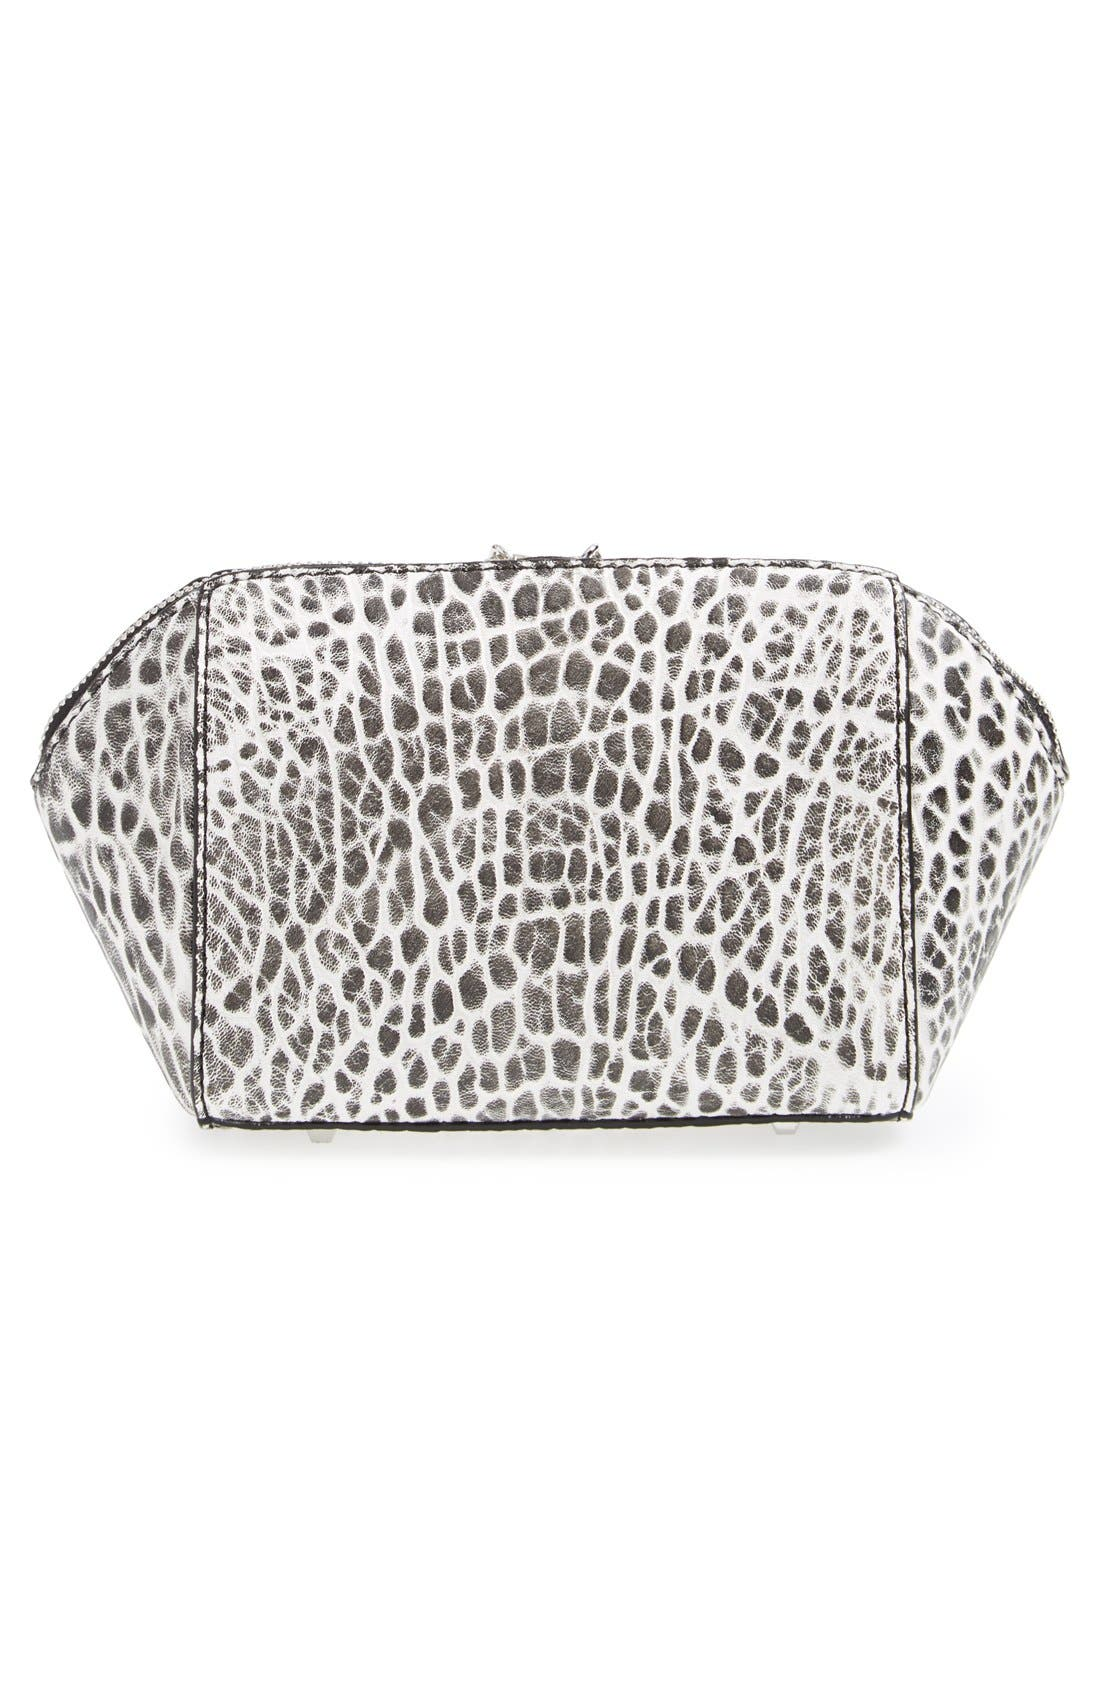 'Chastity' Clutch,                             Alternate thumbnail 5, color,                             001